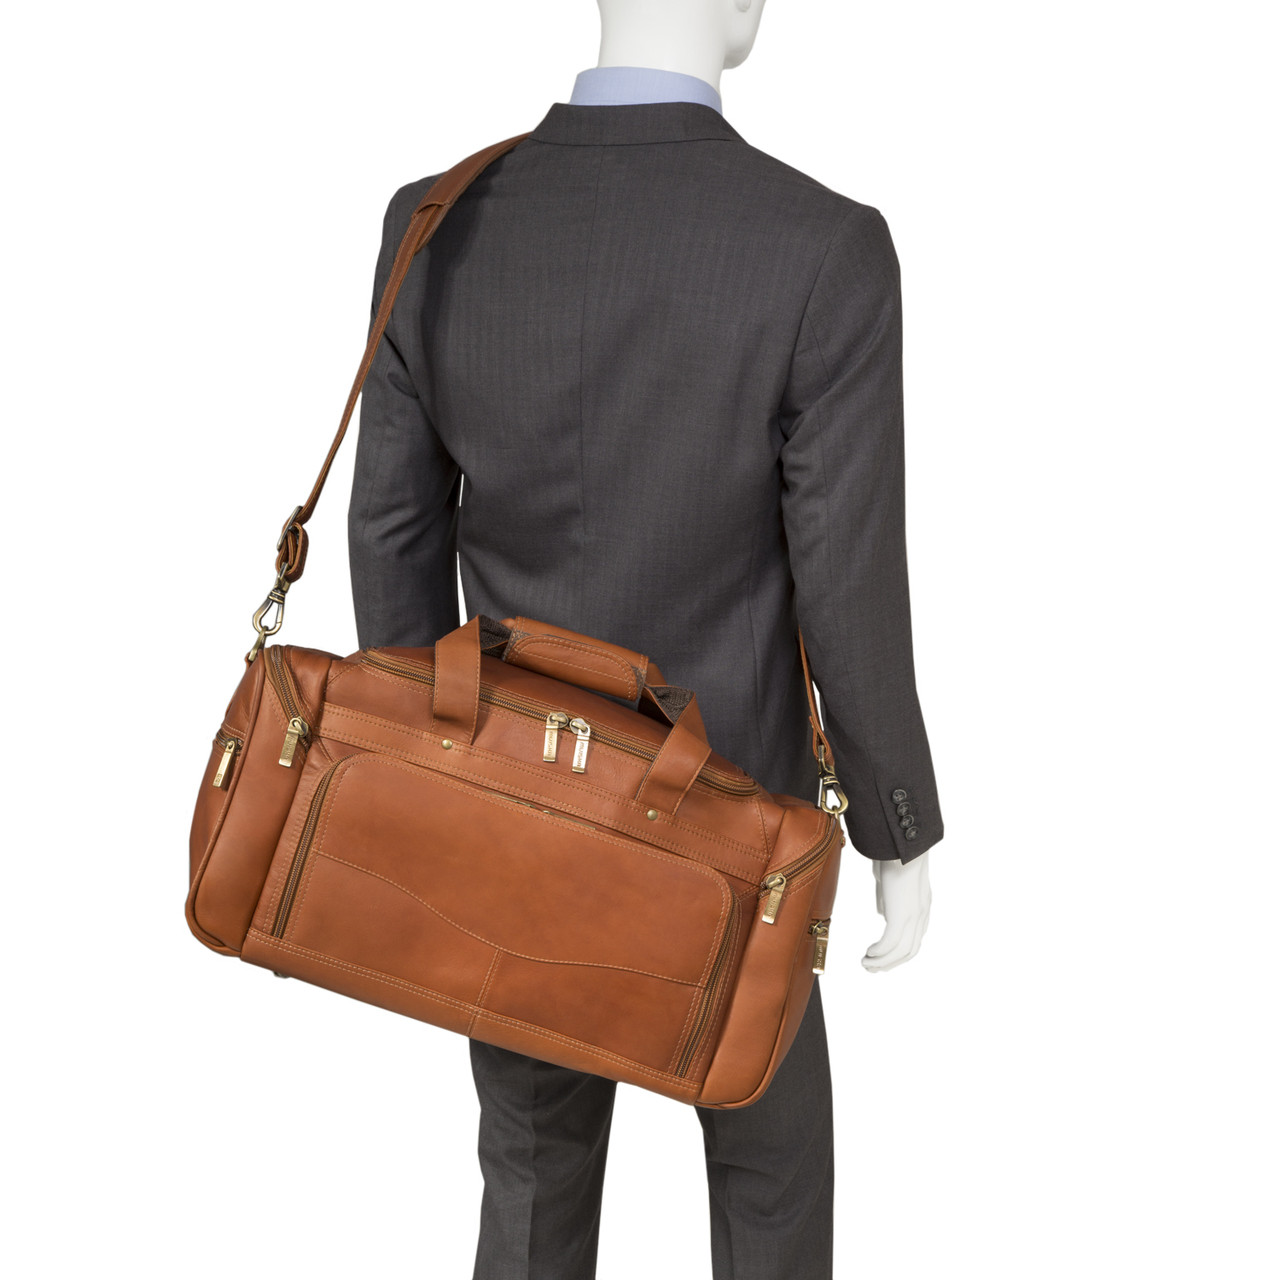 Muiska - Hugo - Leather Carry On Duffel is expertly handcrafted of fine Colombian leather